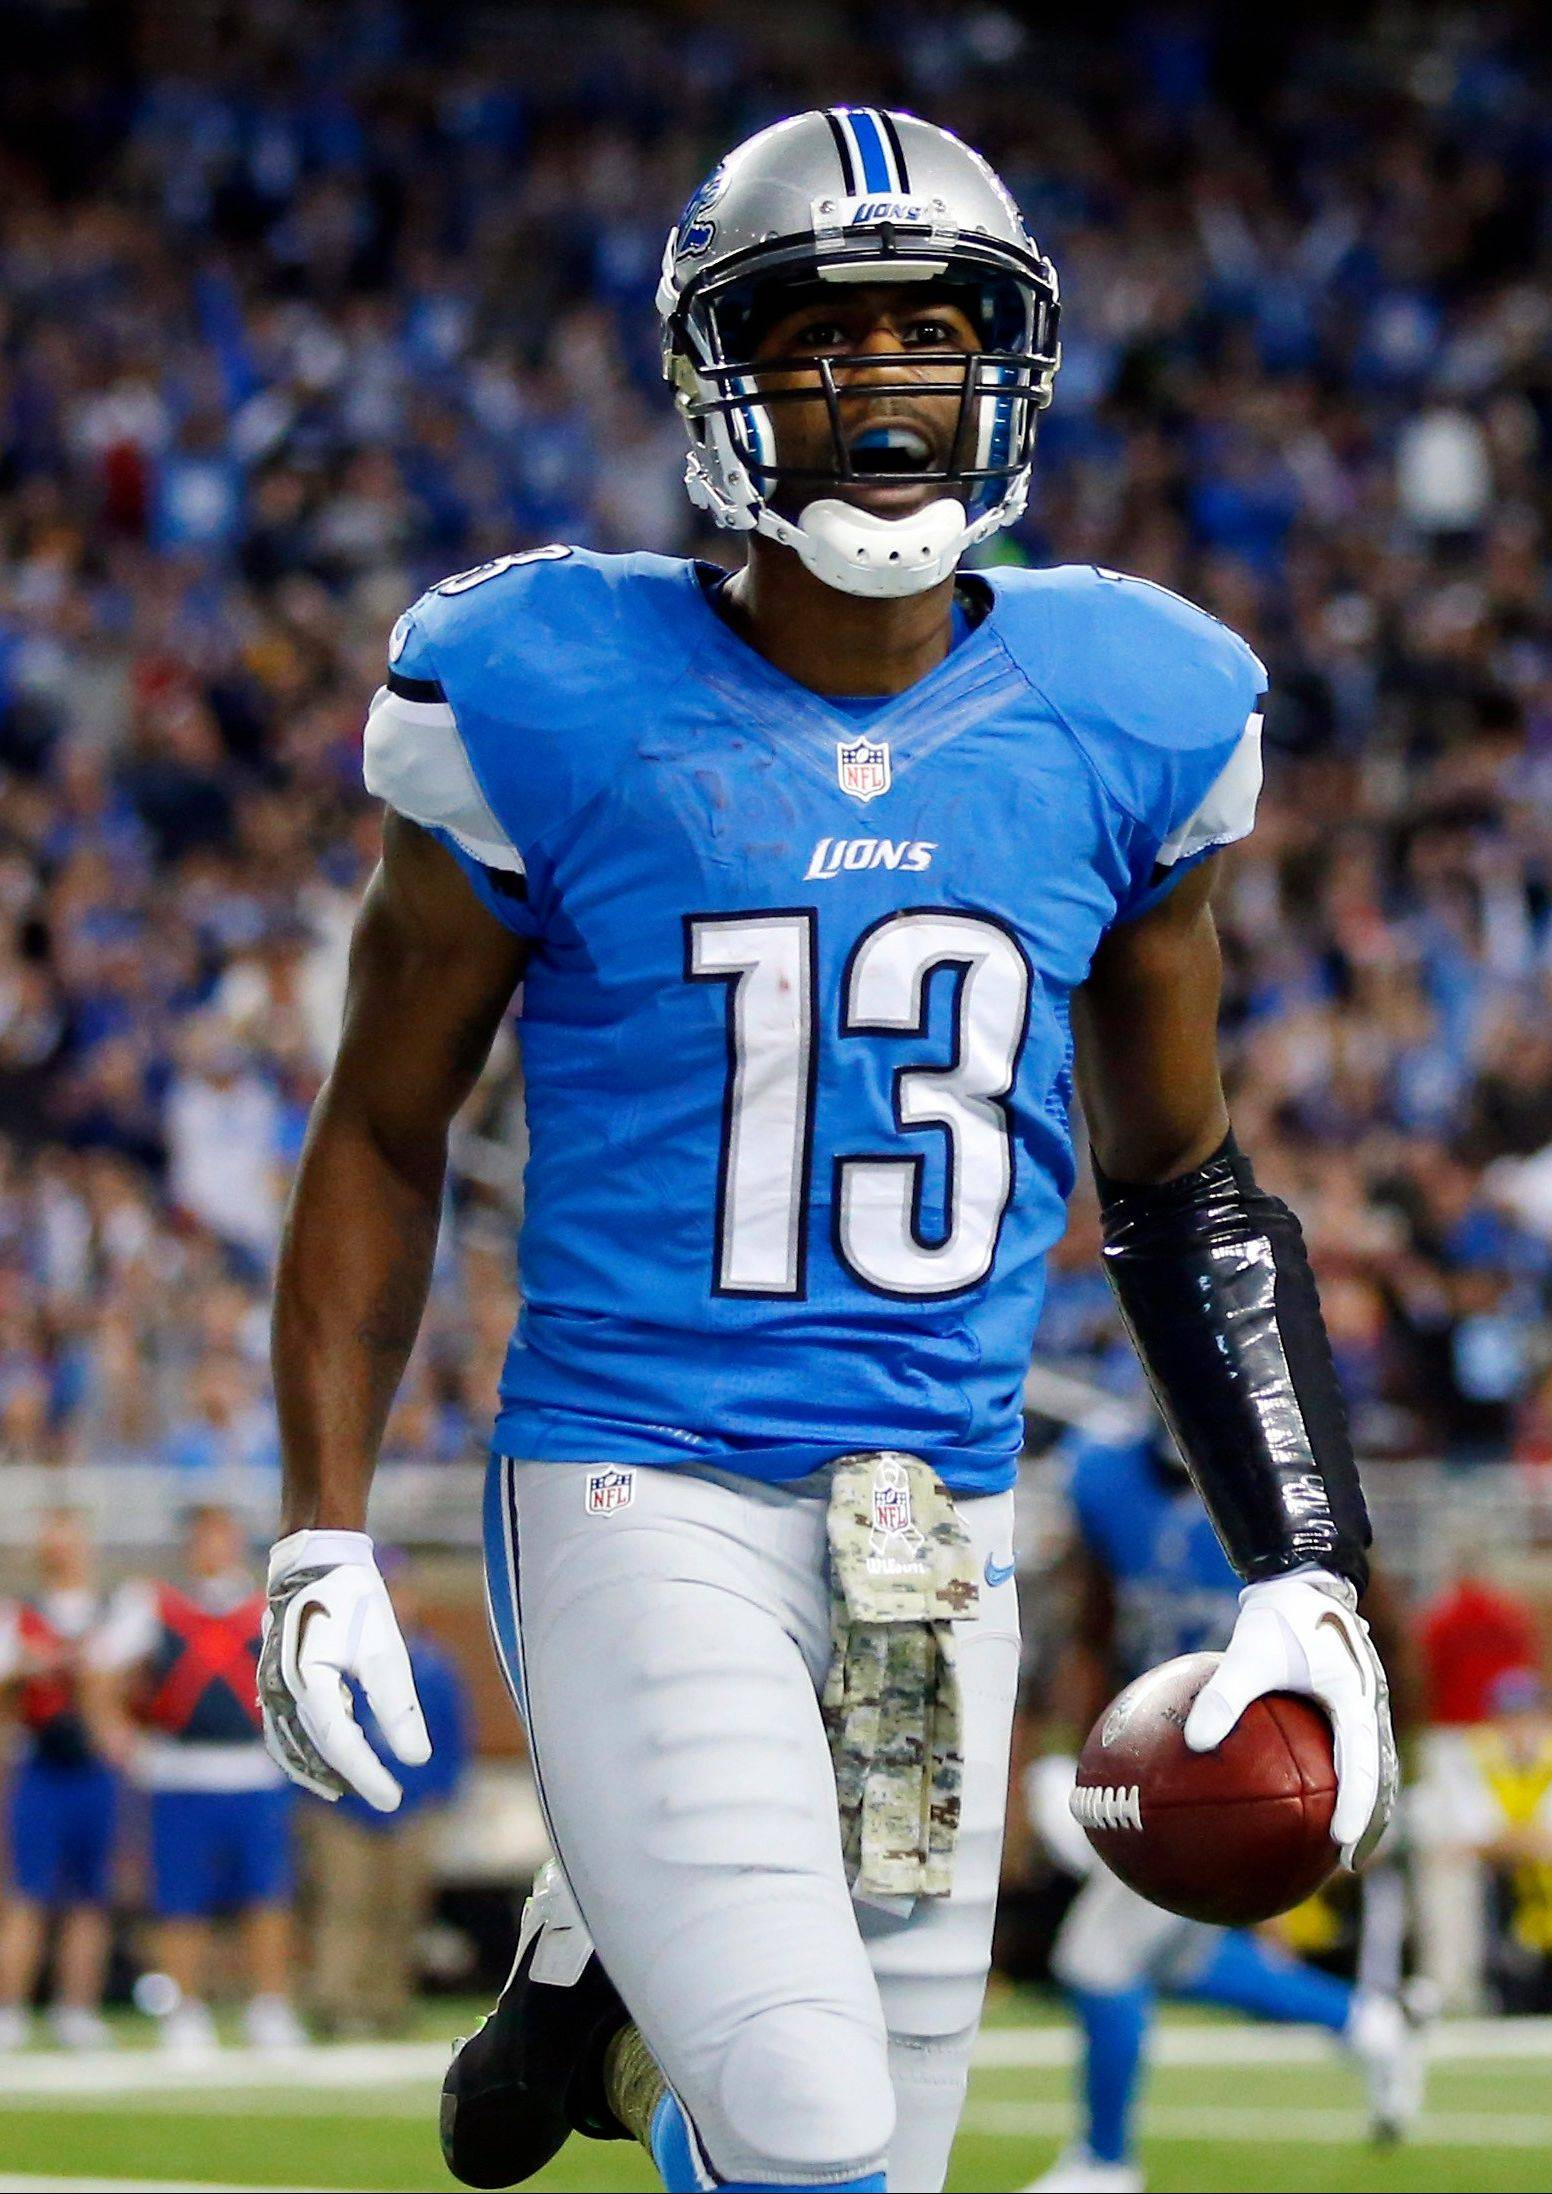 Lions wide receiver Nate Burleson returned last week and caught 7 passes for 77 yards with a touchdown. He's a good bet to put up some nice numbers on Turkey Day, according to John Dietz.